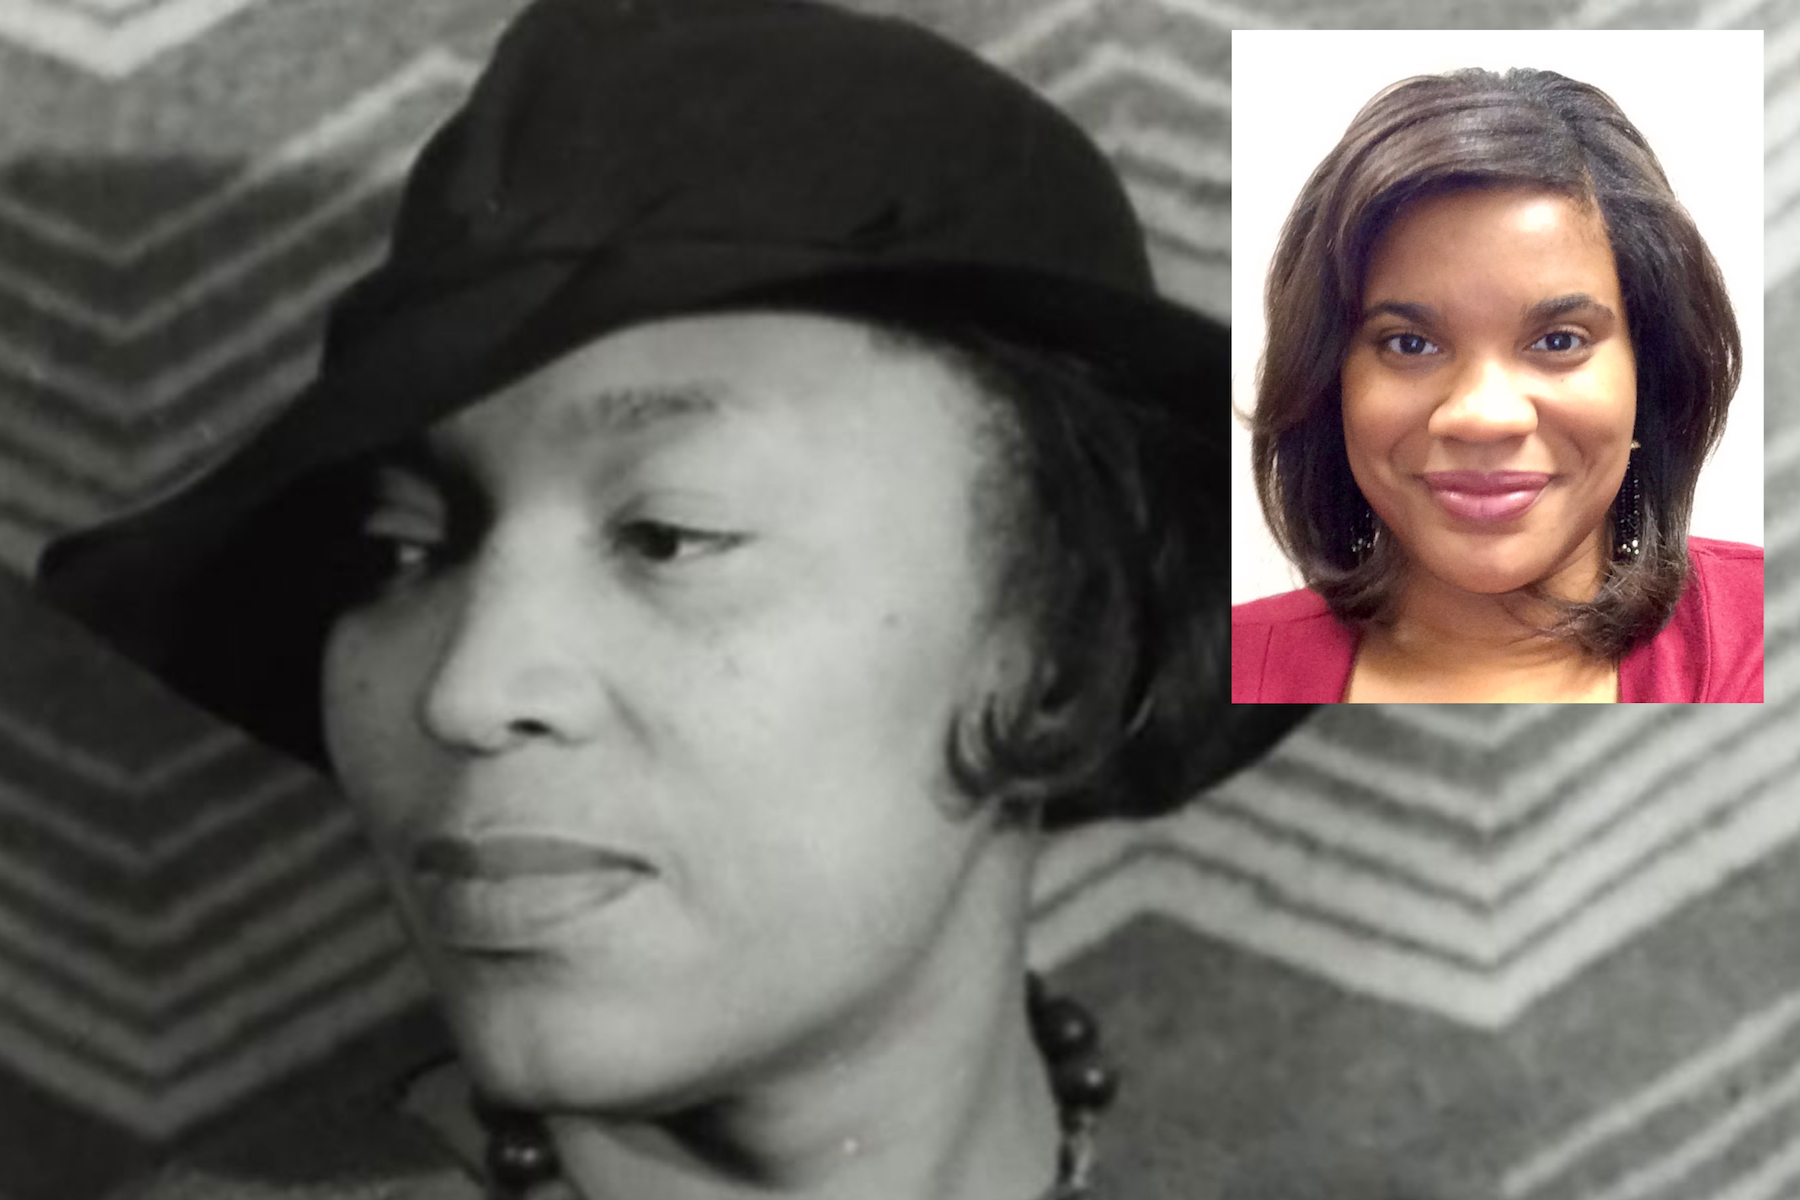 Austin Peay professor selected for National Endowment for the Humanities' Zora Neale Hurston institute